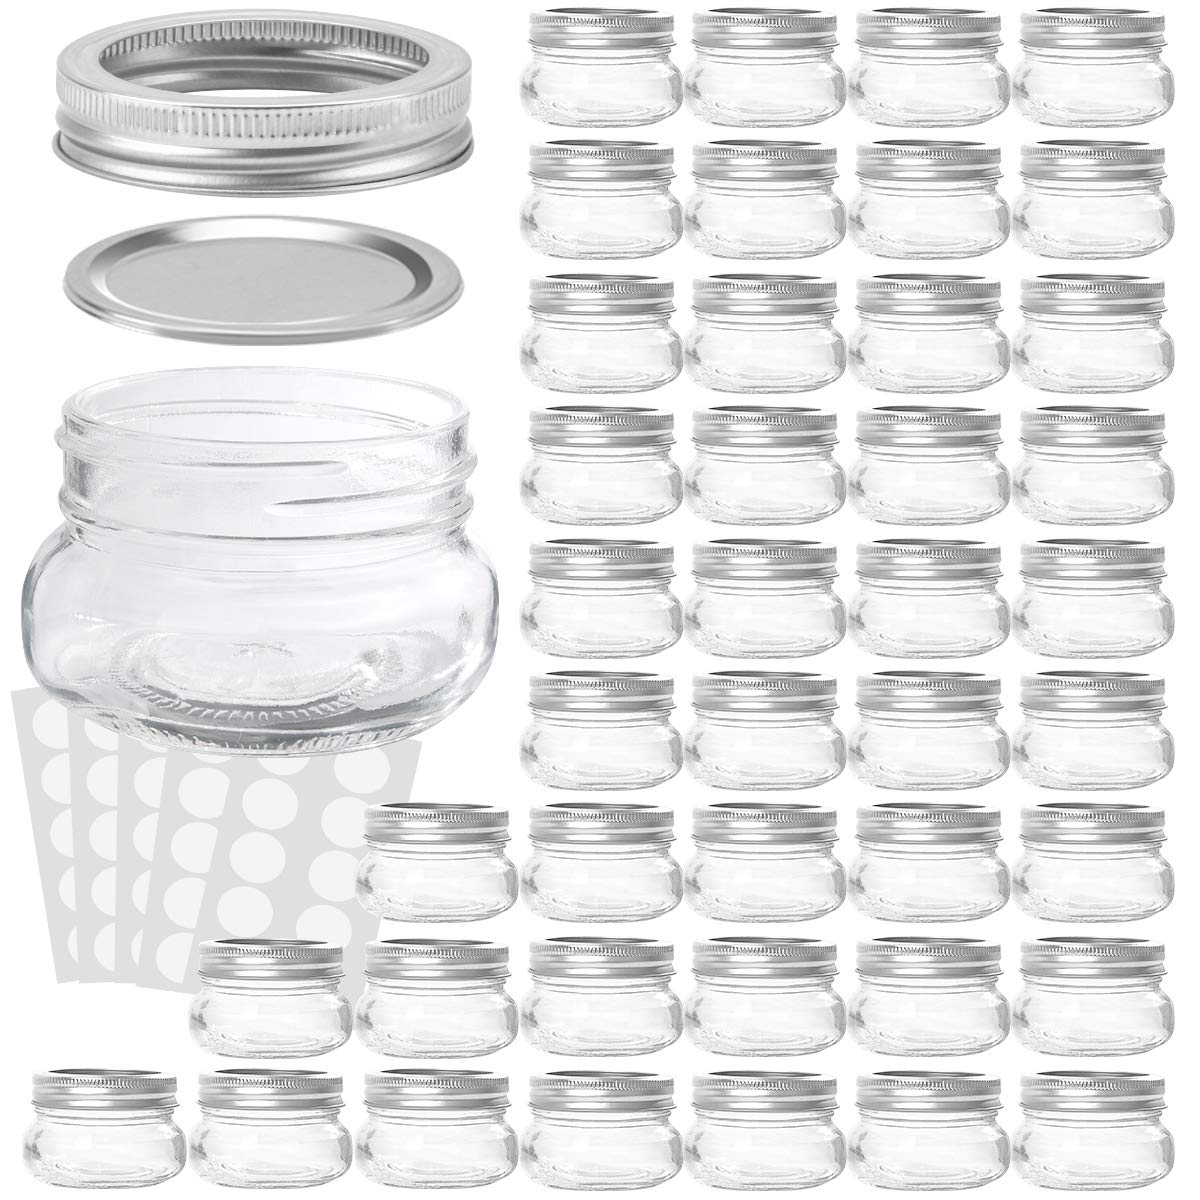 KAMOTA Mason Jars 4OZ With Regular Lids and Bands, Ideal for Jam, Honey, Wedding Favors, Shower Favors, Baby Foods, DIY Magnetic Spice Jars, 42 PACK, 50 Whiteboard Labels Included